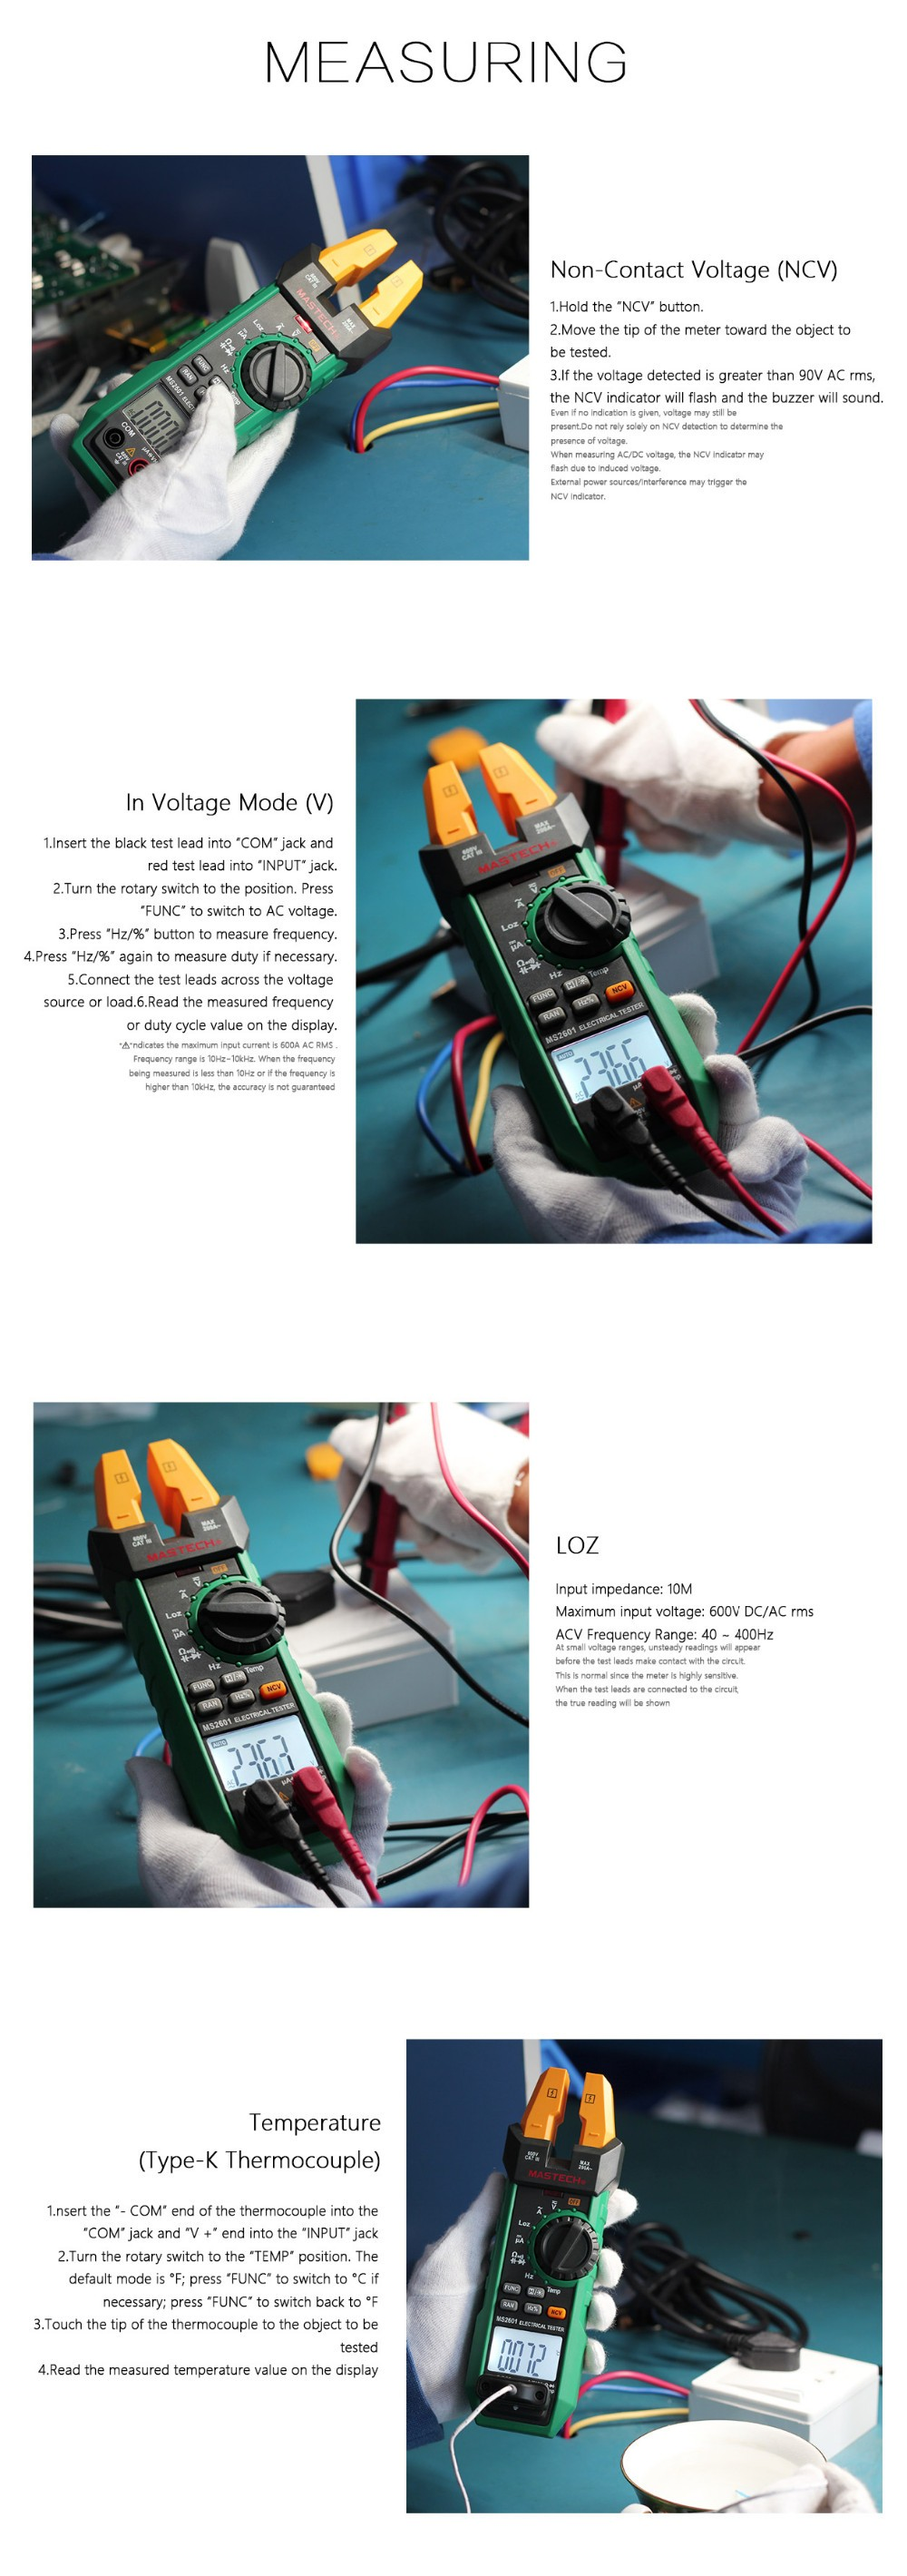 Ms2601 Digital Ac Dc Fork Meter Clamp With Frequency Duty Switch Wizard 3way Electrical Wiring Tester Cycle Temperature